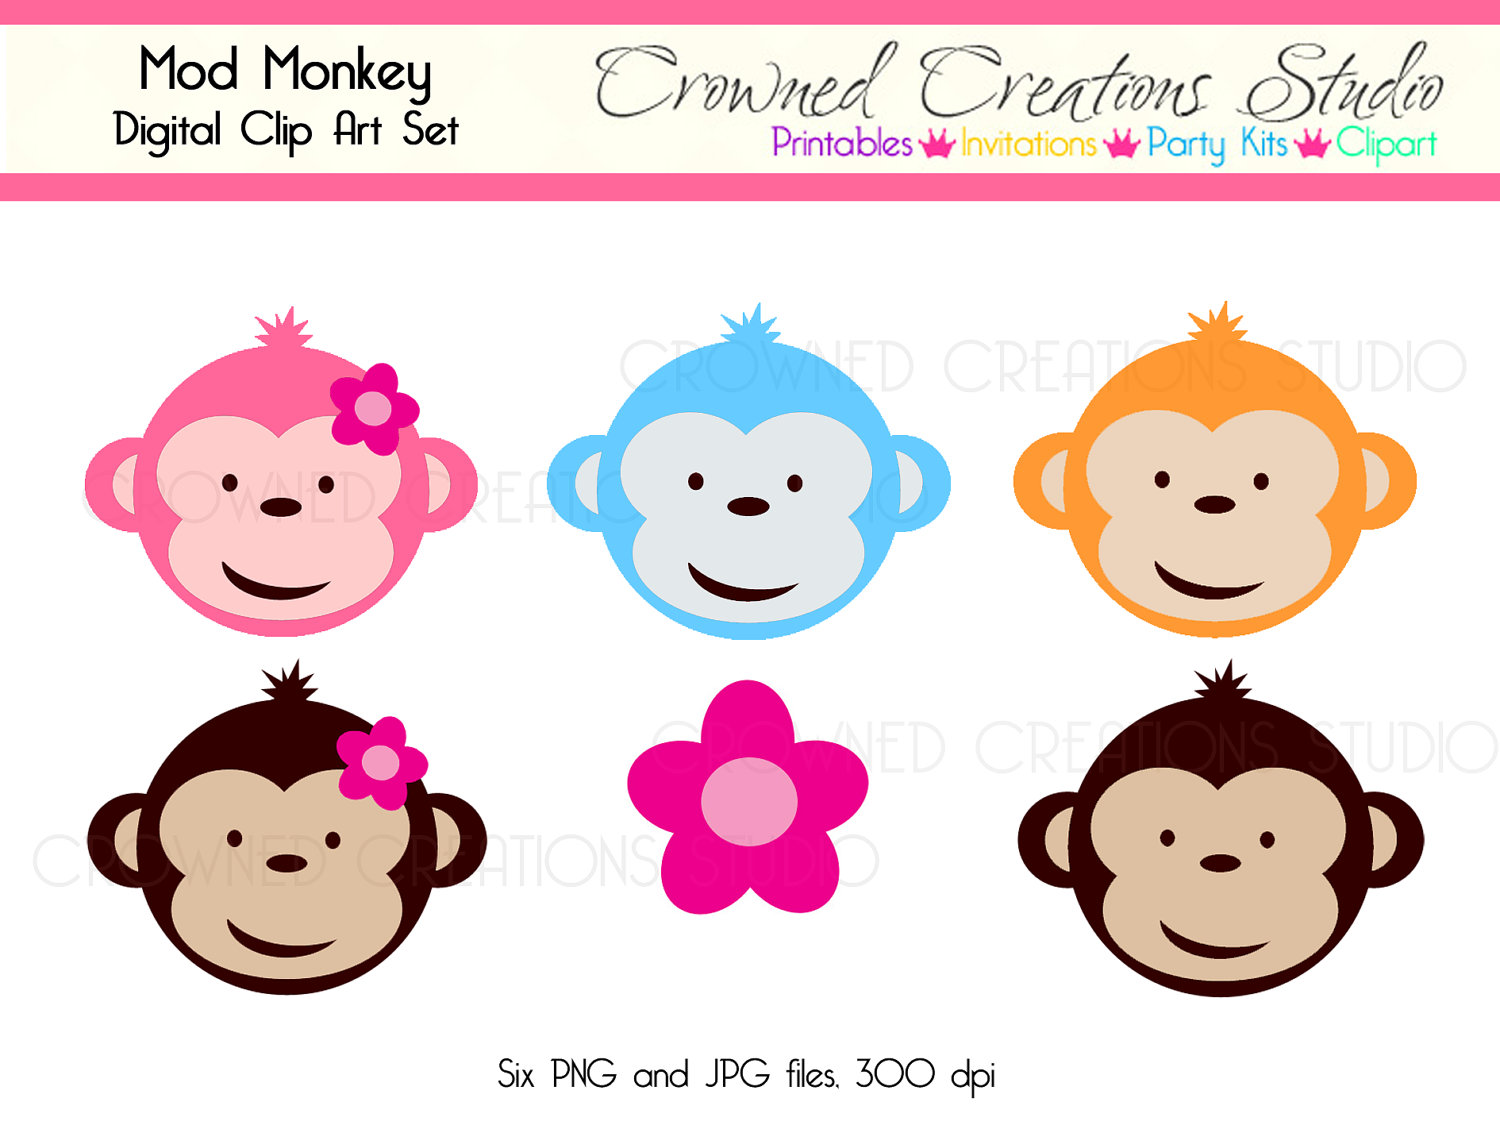 Mod Monkey Clip Art Set With Pink Flower By Crownedcreations